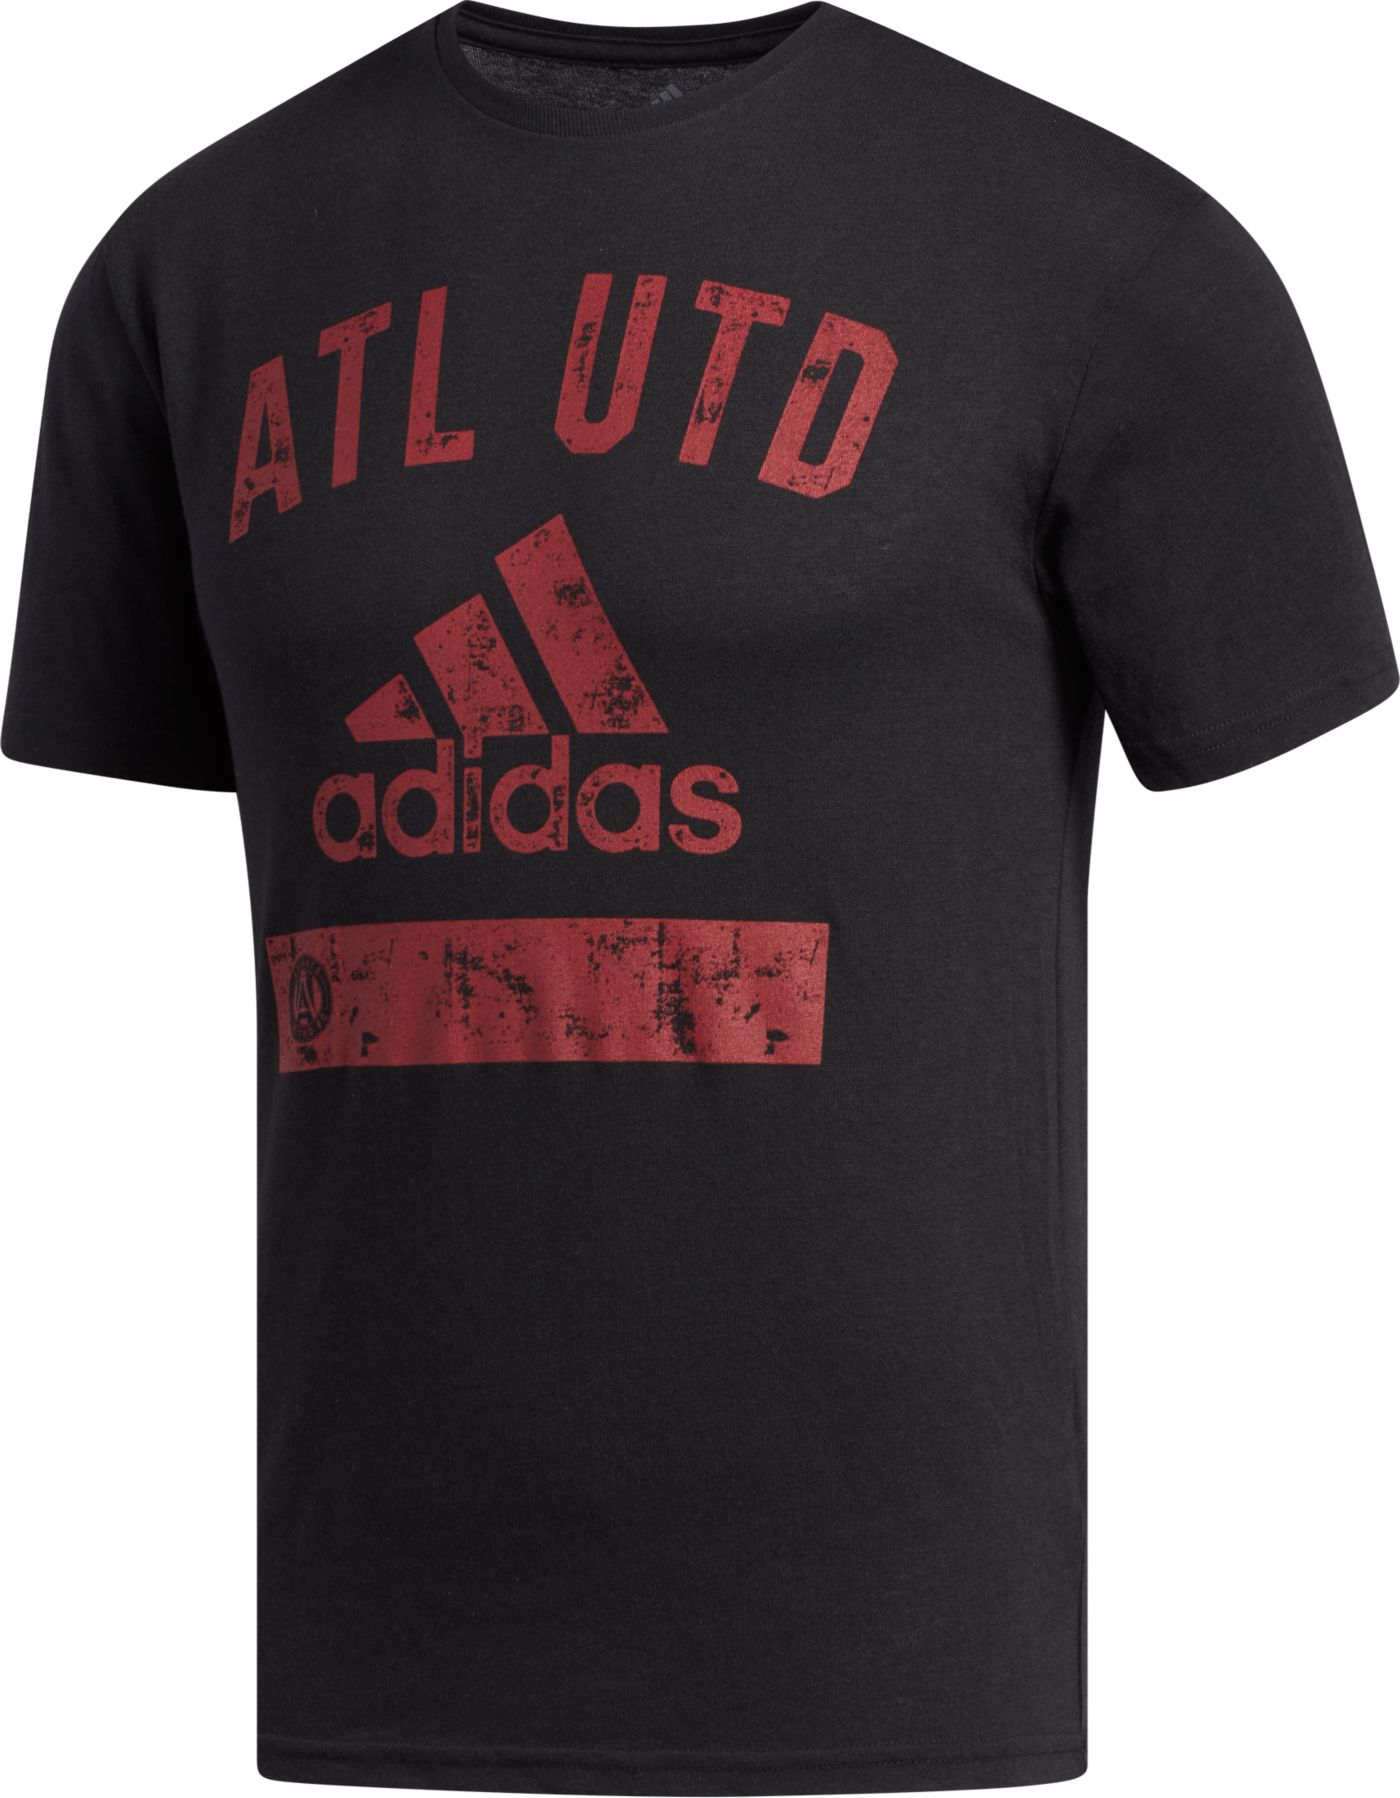 adidas Men's Atlanta United Black Tri-Blend T-Shirt